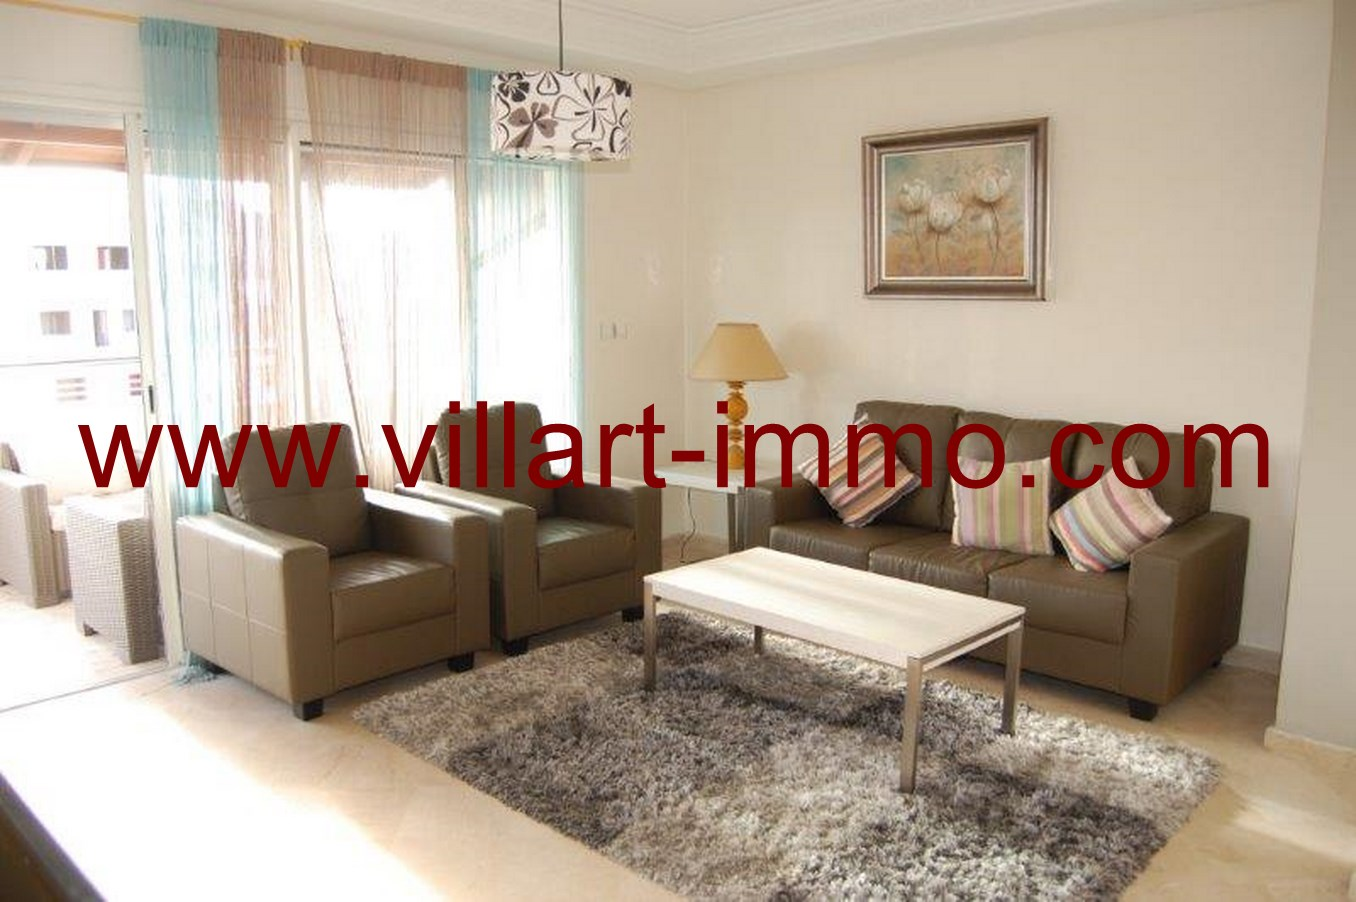 2-Location-Tanger-Appartement-Meublé-L622-Centre-Ville-Salon